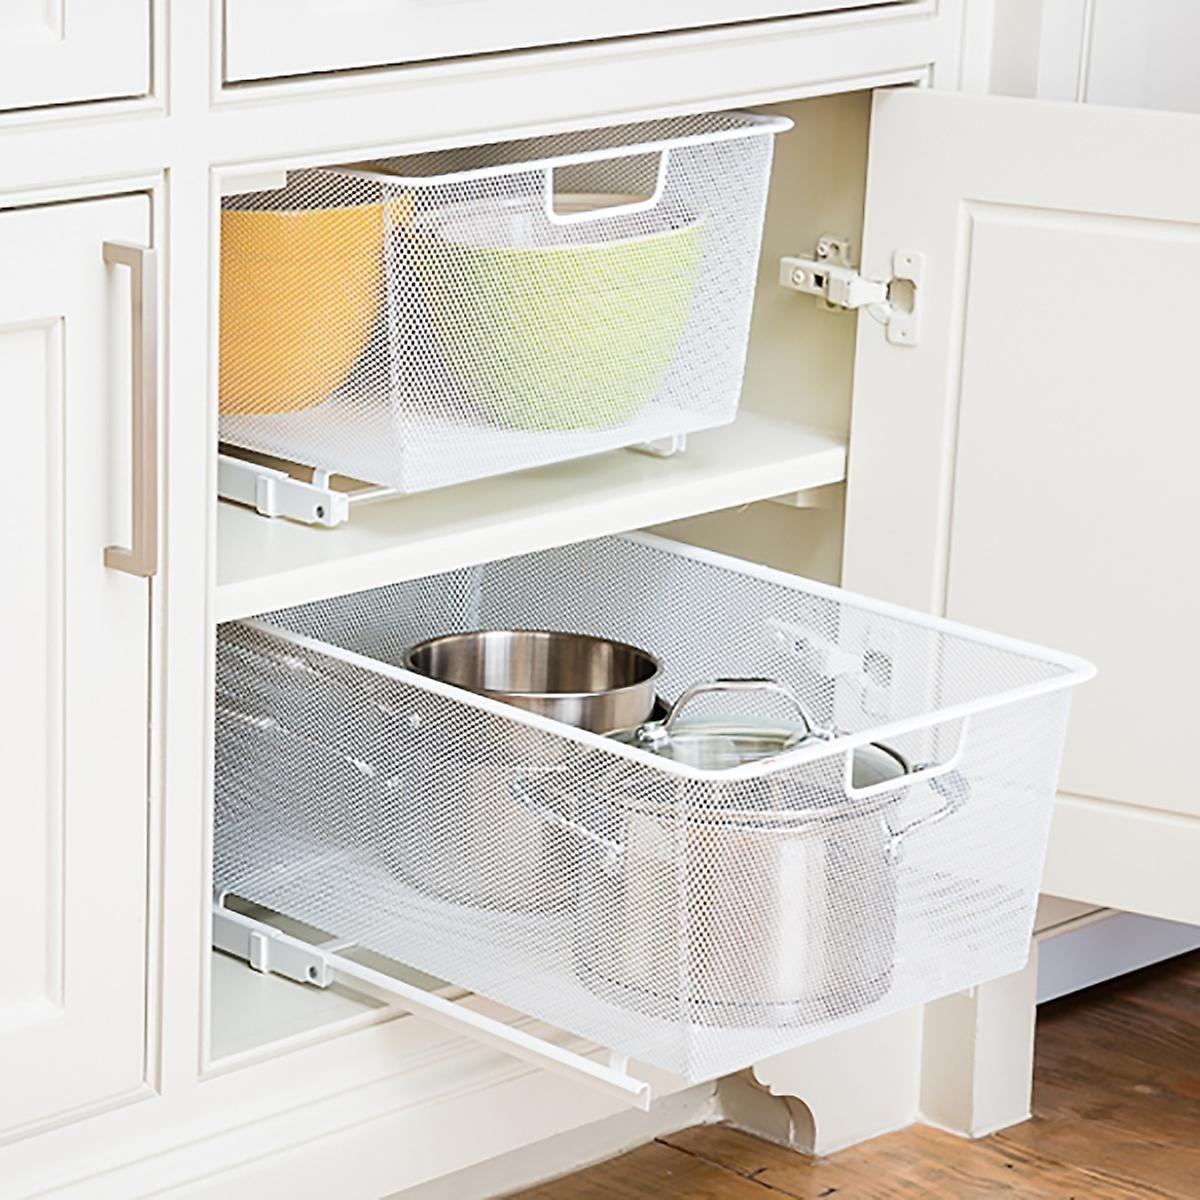 Sliding drawer placed in cabinet with various pots and pans inside